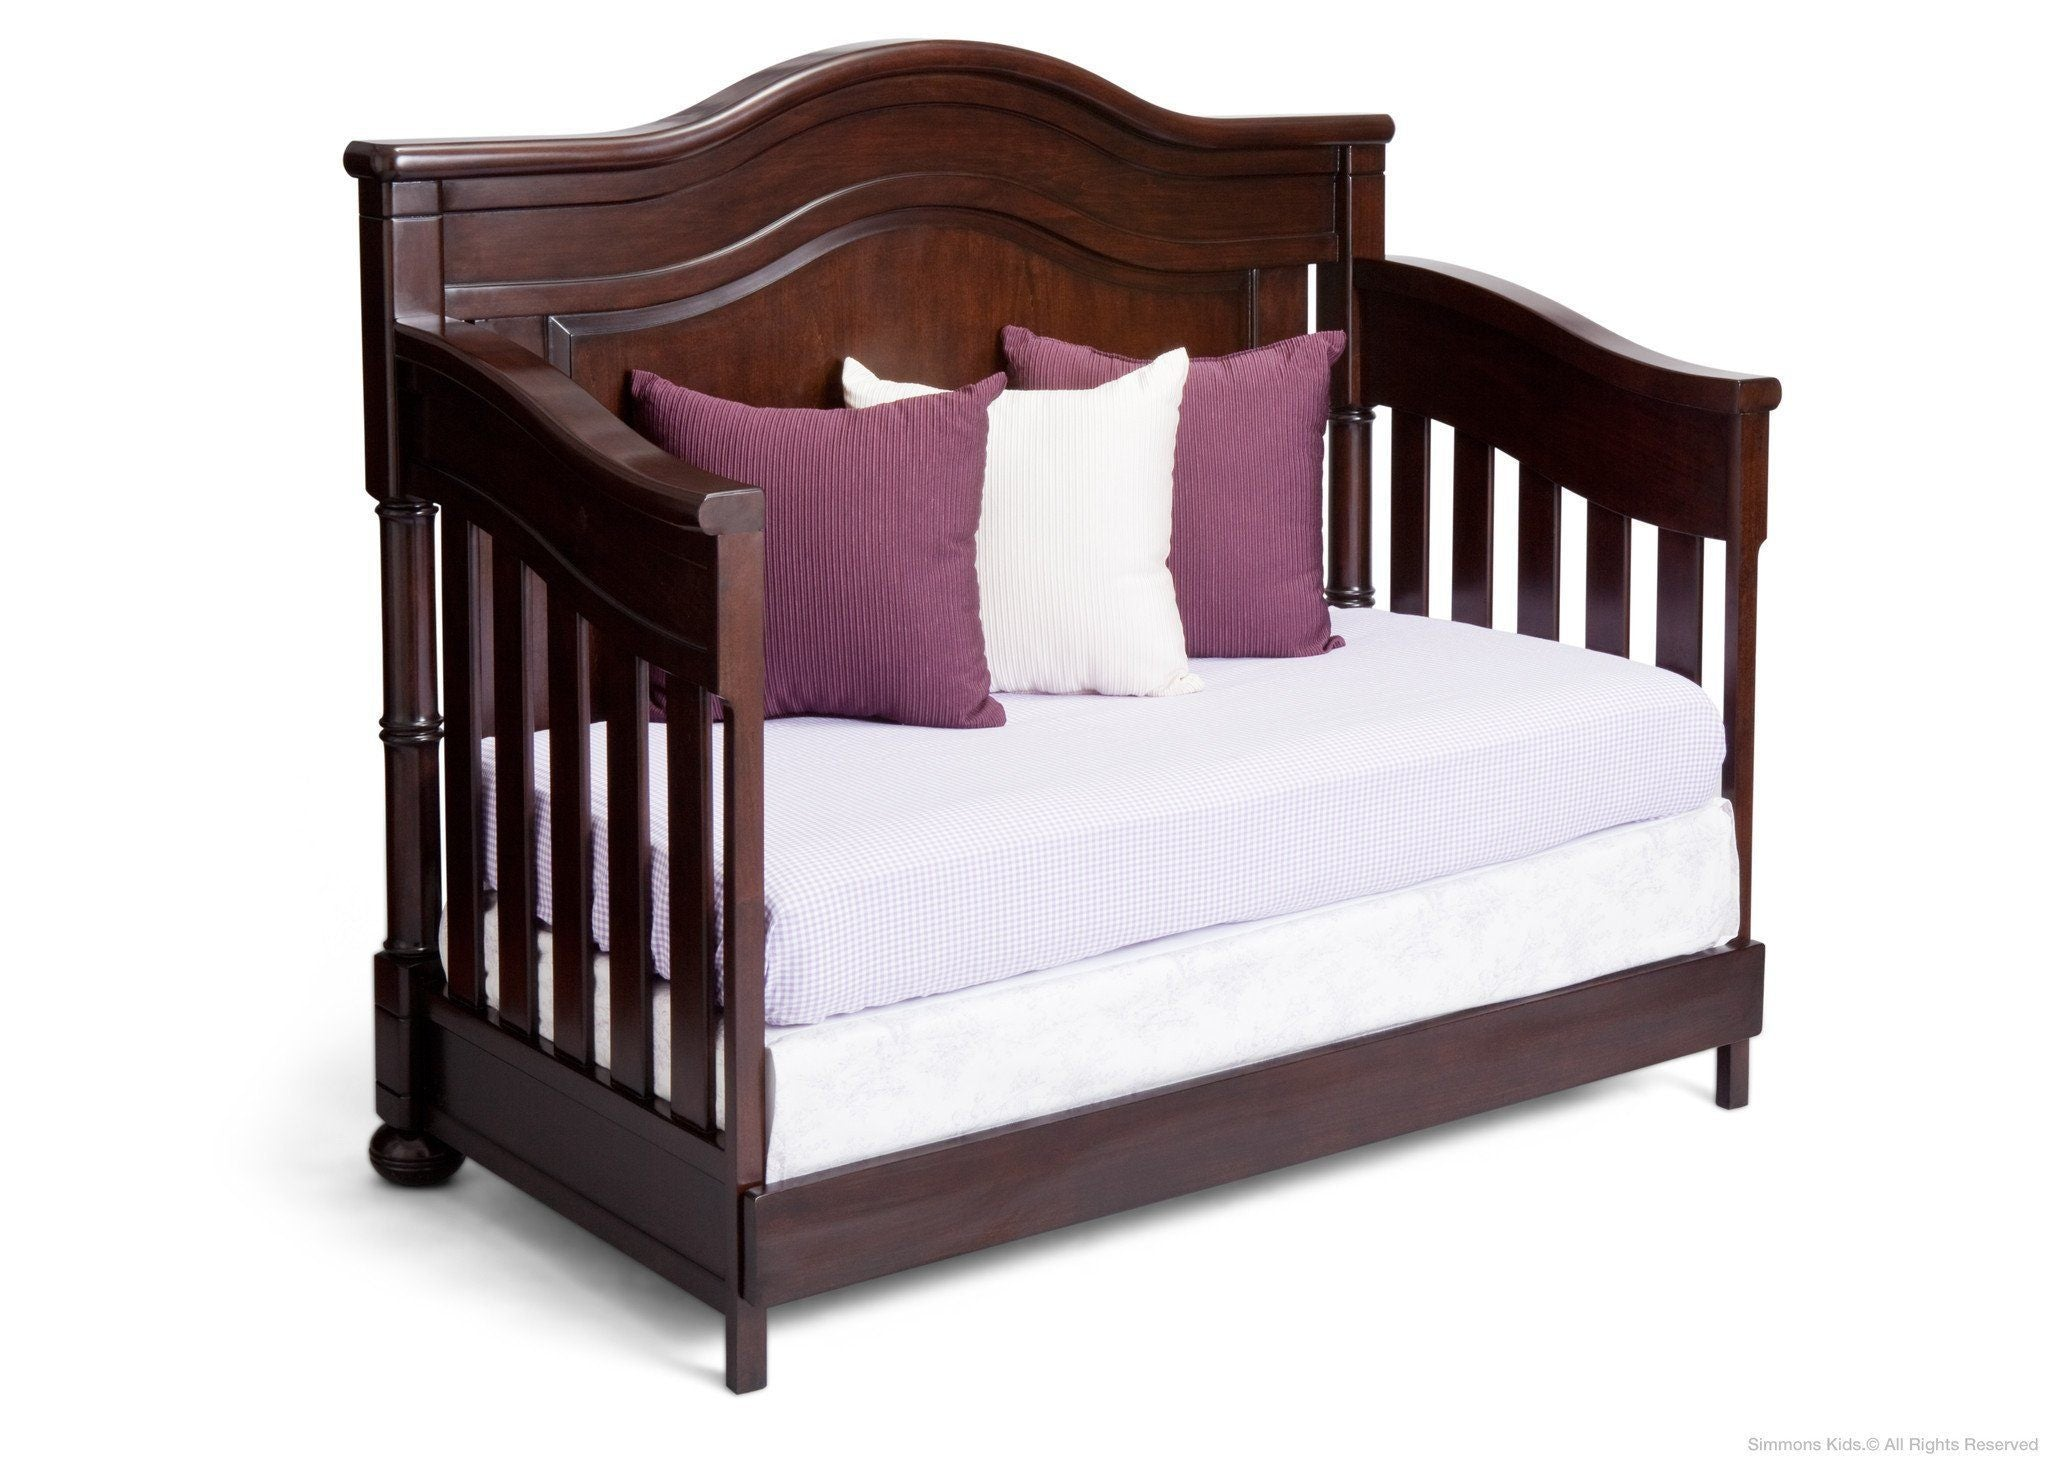 Simmons Kids Molasses (226) Highpoint Crib 'N' More (305180), Day Bed Conversion a3a